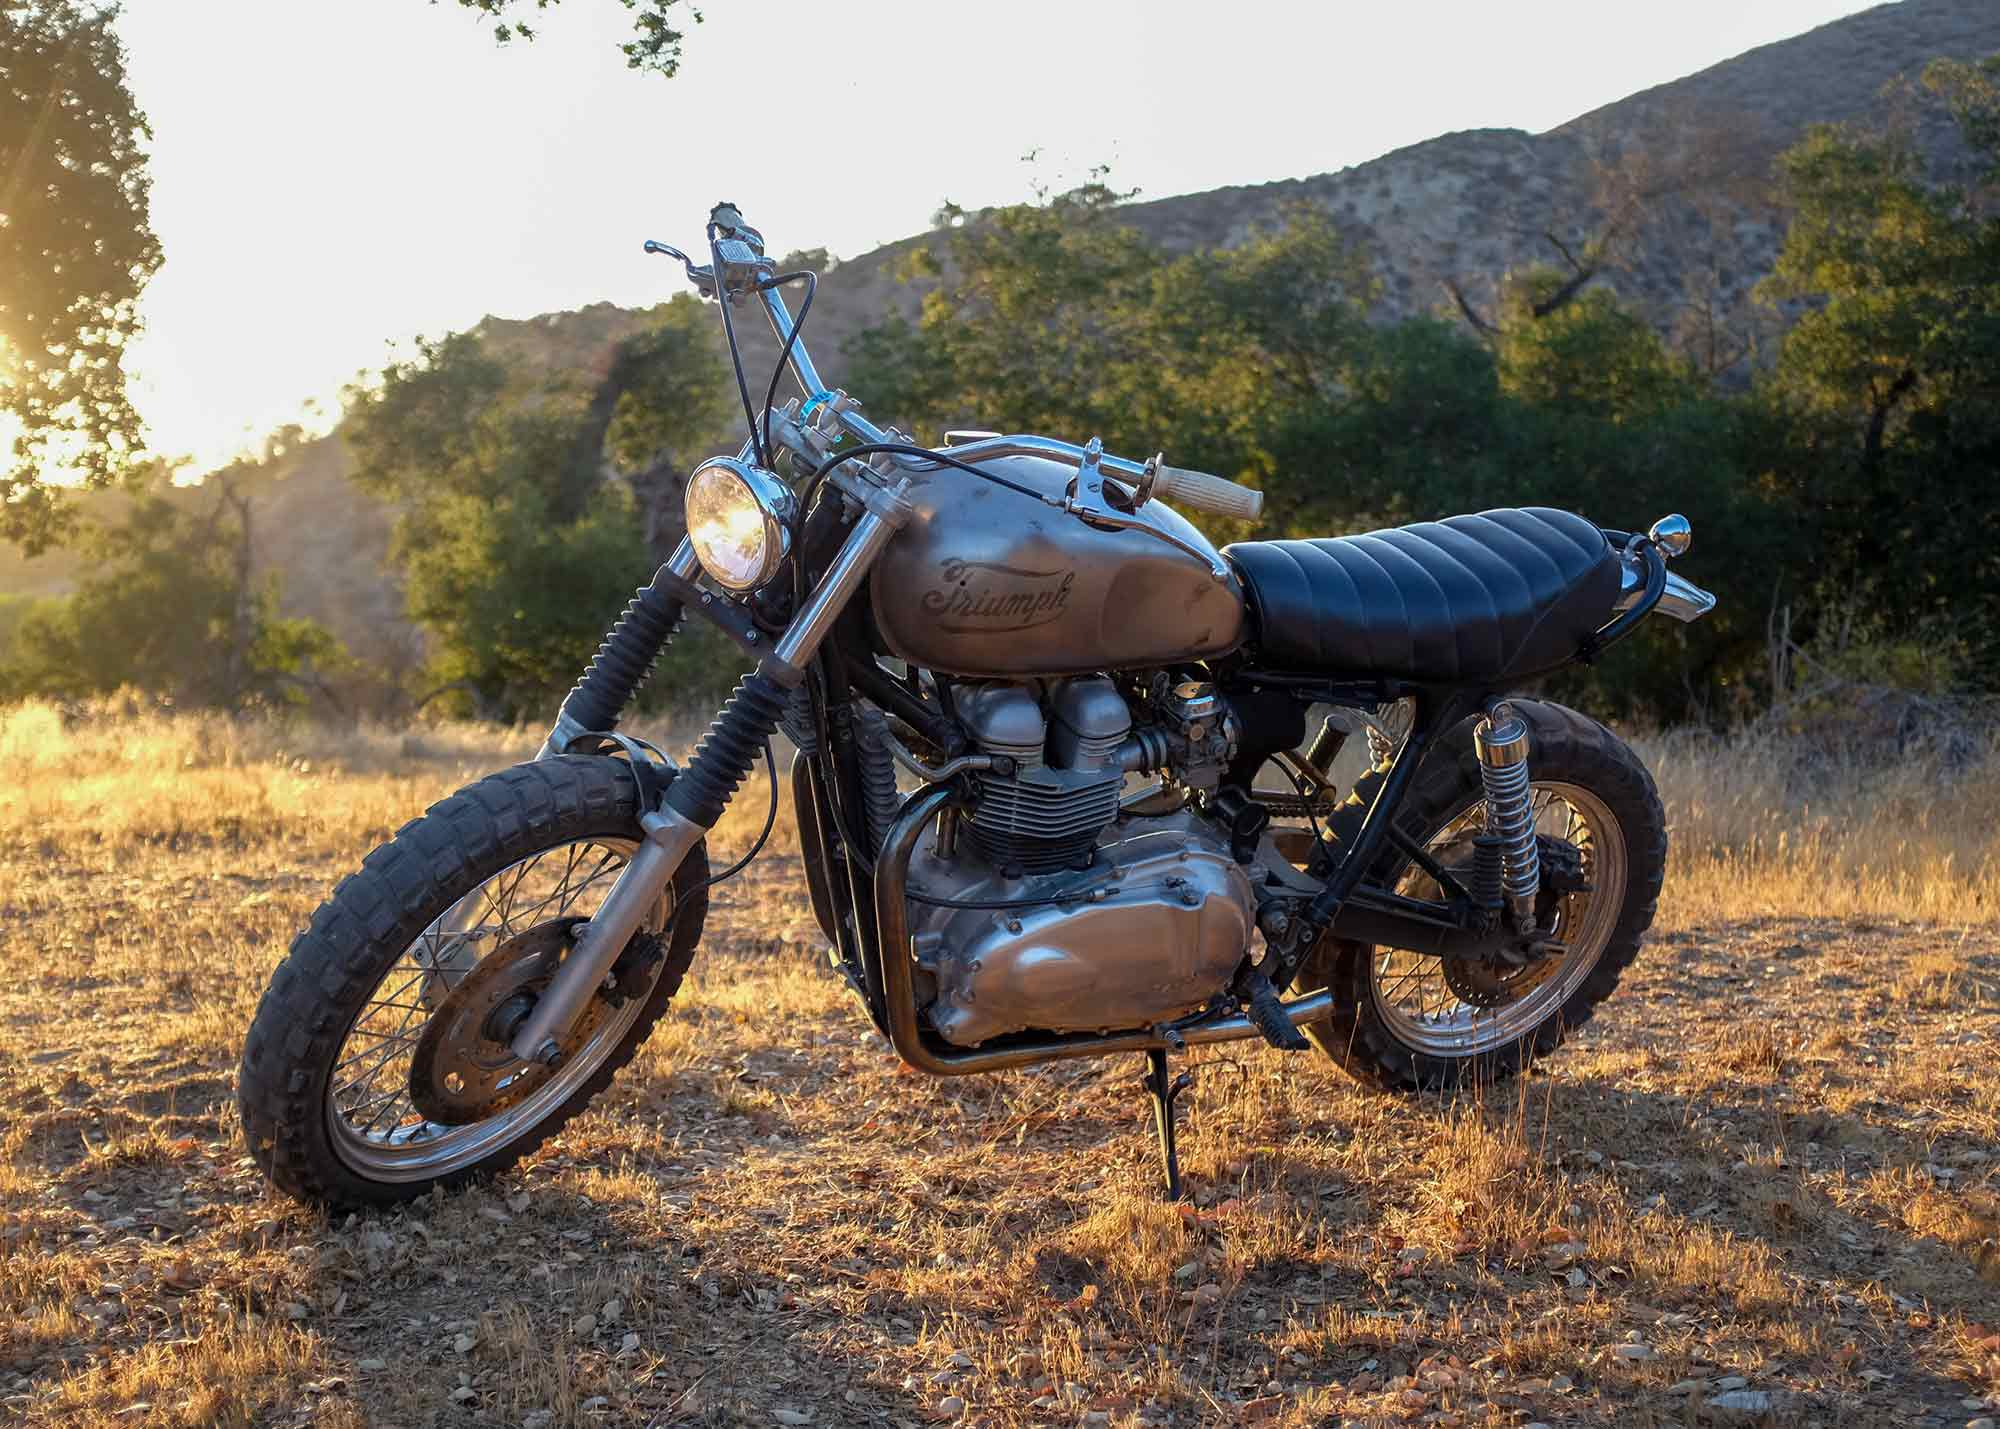 """This weekend's weapon of choice: the author's 2003 Triumph Bonneville, affectionately dubbed """"El Trineo,"""" Spanish for """"The Sled,"""" in homage to its dirt-bound predecessors."""